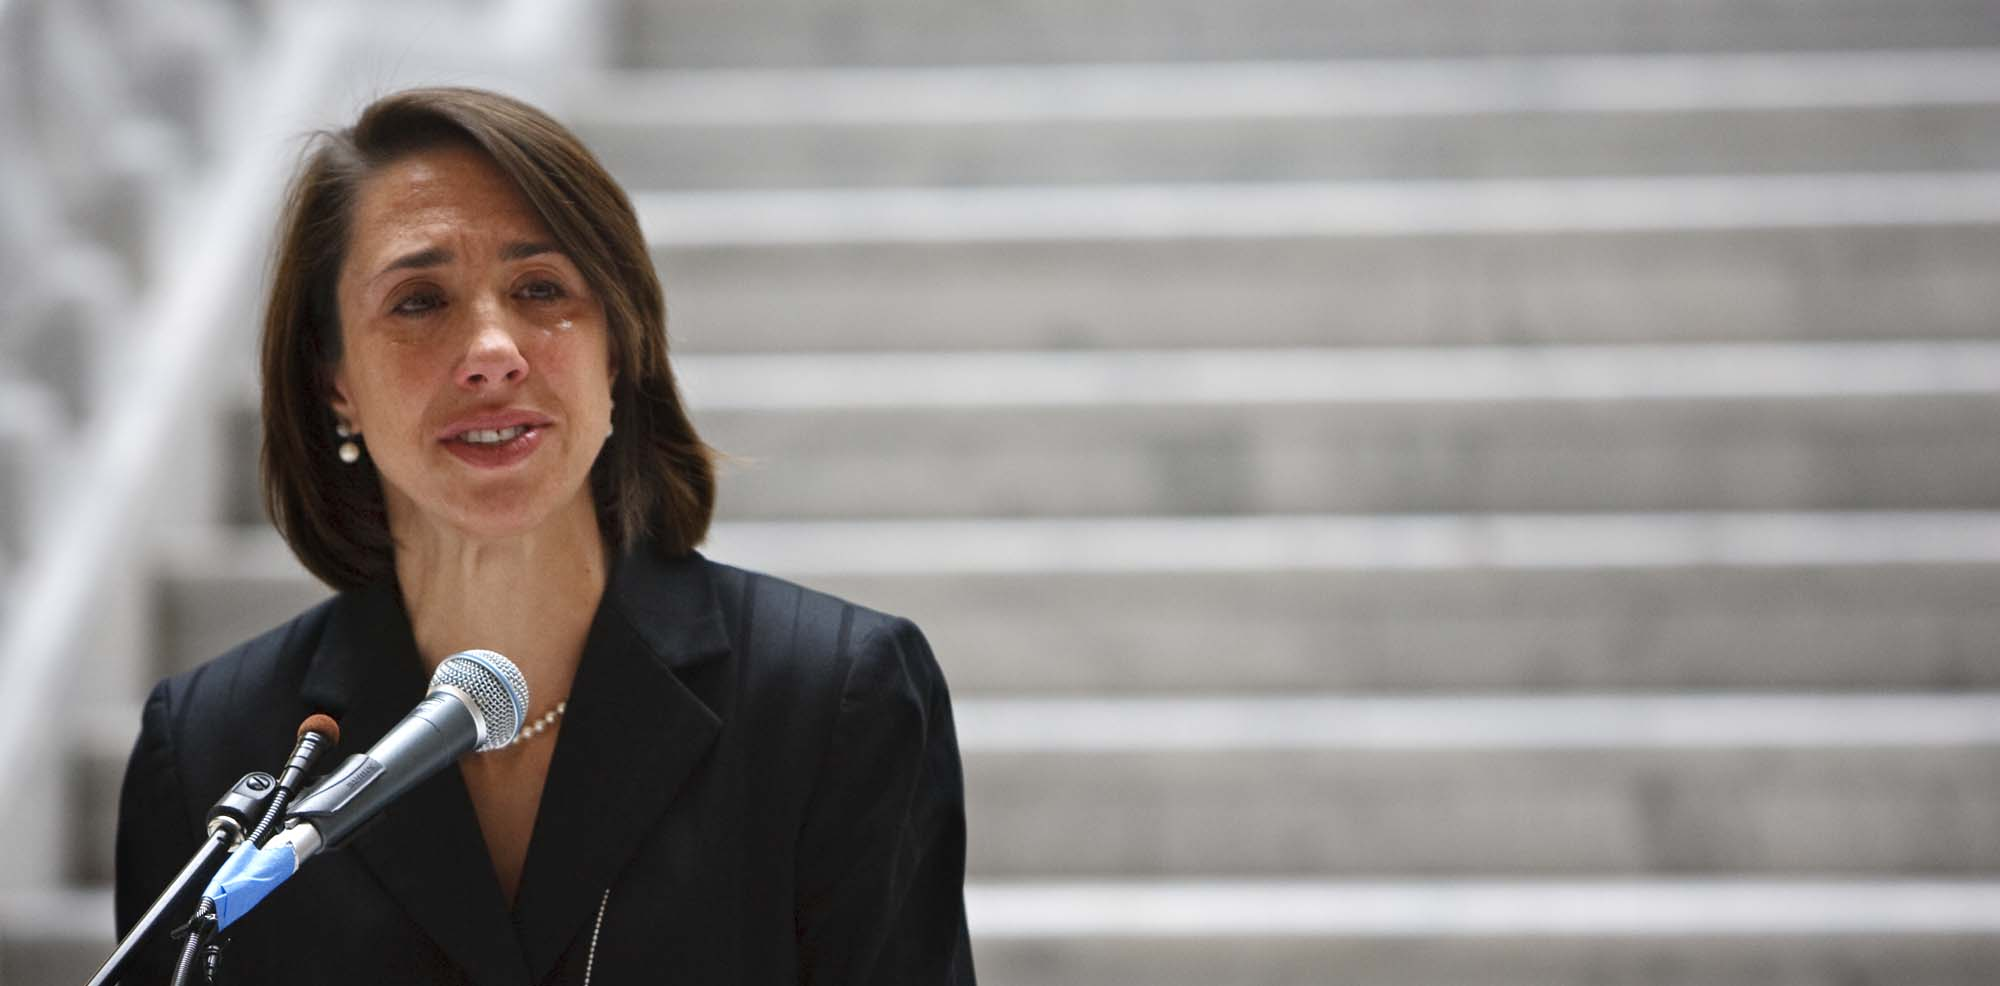 Utah's Lesbian Rep. Christine Johnson Is Done With Lawmaking + Baby Making. Now, Equality